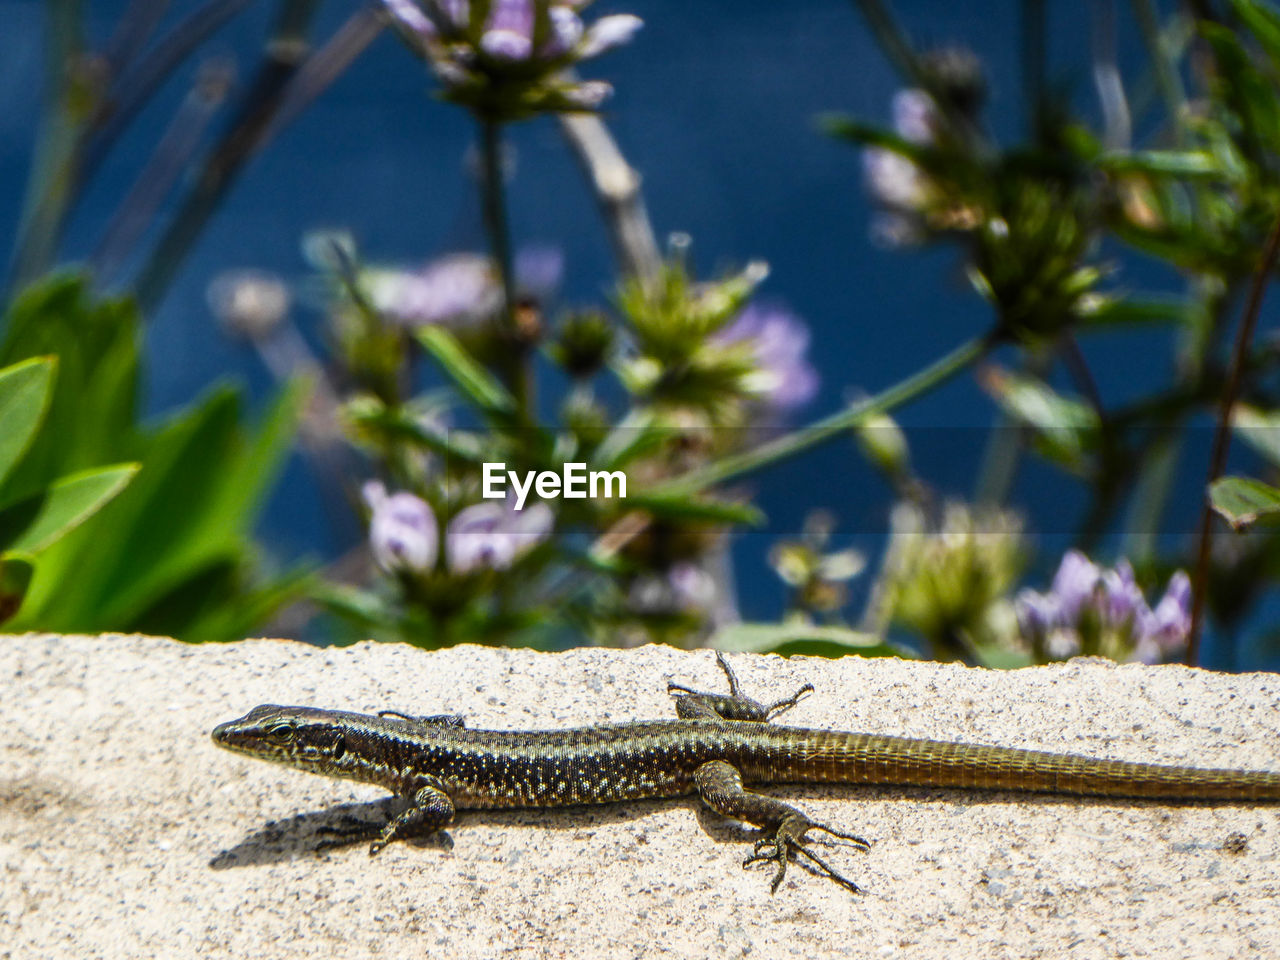 one animal, animal, animal themes, animal wildlife, reptile, animals in the wild, vertebrate, lizard, nature, sunlight, day, no people, focus on foreground, close-up, plant, outdoors, solid, zoology, rock, growth